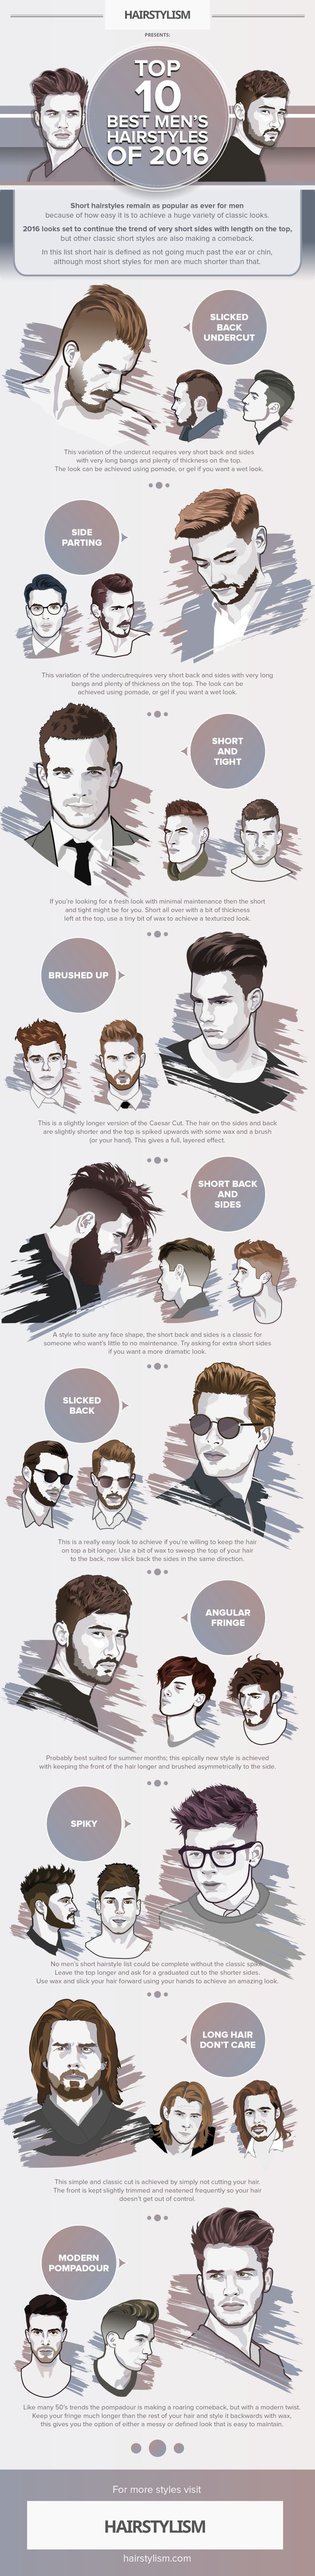 Hairstylism Infographic: most popular hairstyles. Undercut and side parts.